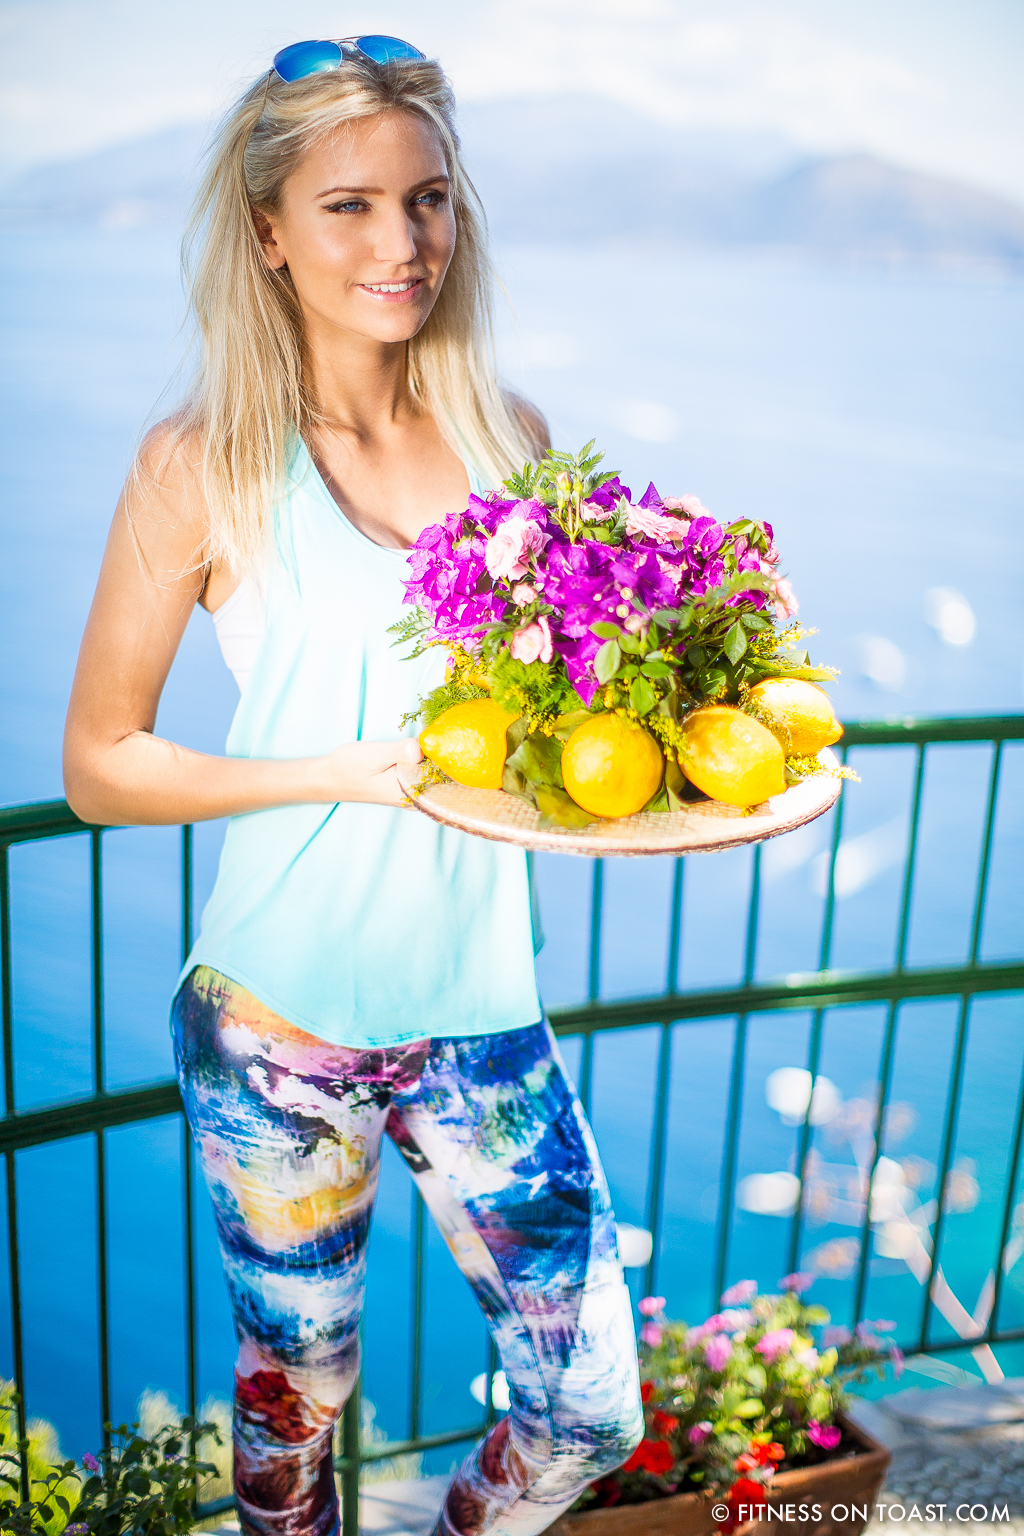 Fitness On Toast Faya Blog Girl Training Outfit Fashion Fit Workout Meditation ActiveInStyle Lorna Jane Capri Caesar Augustus Hotel Travel Balcony Beautiful View-7